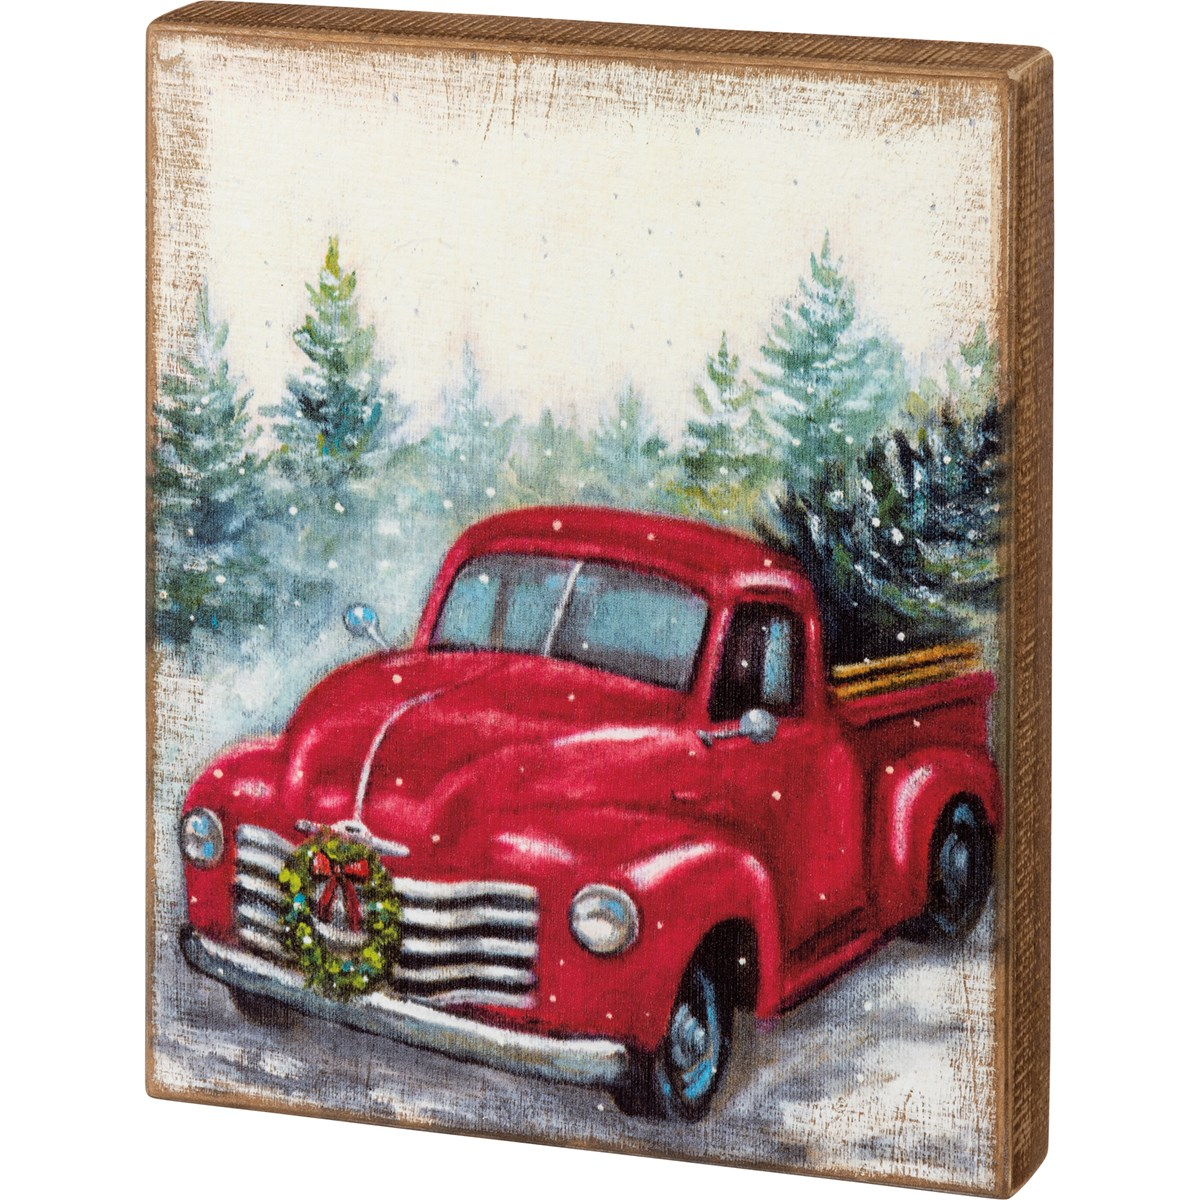 "Box Sign - Red Truck - 10.50"" x 13"" x 1.75"" - Wood"